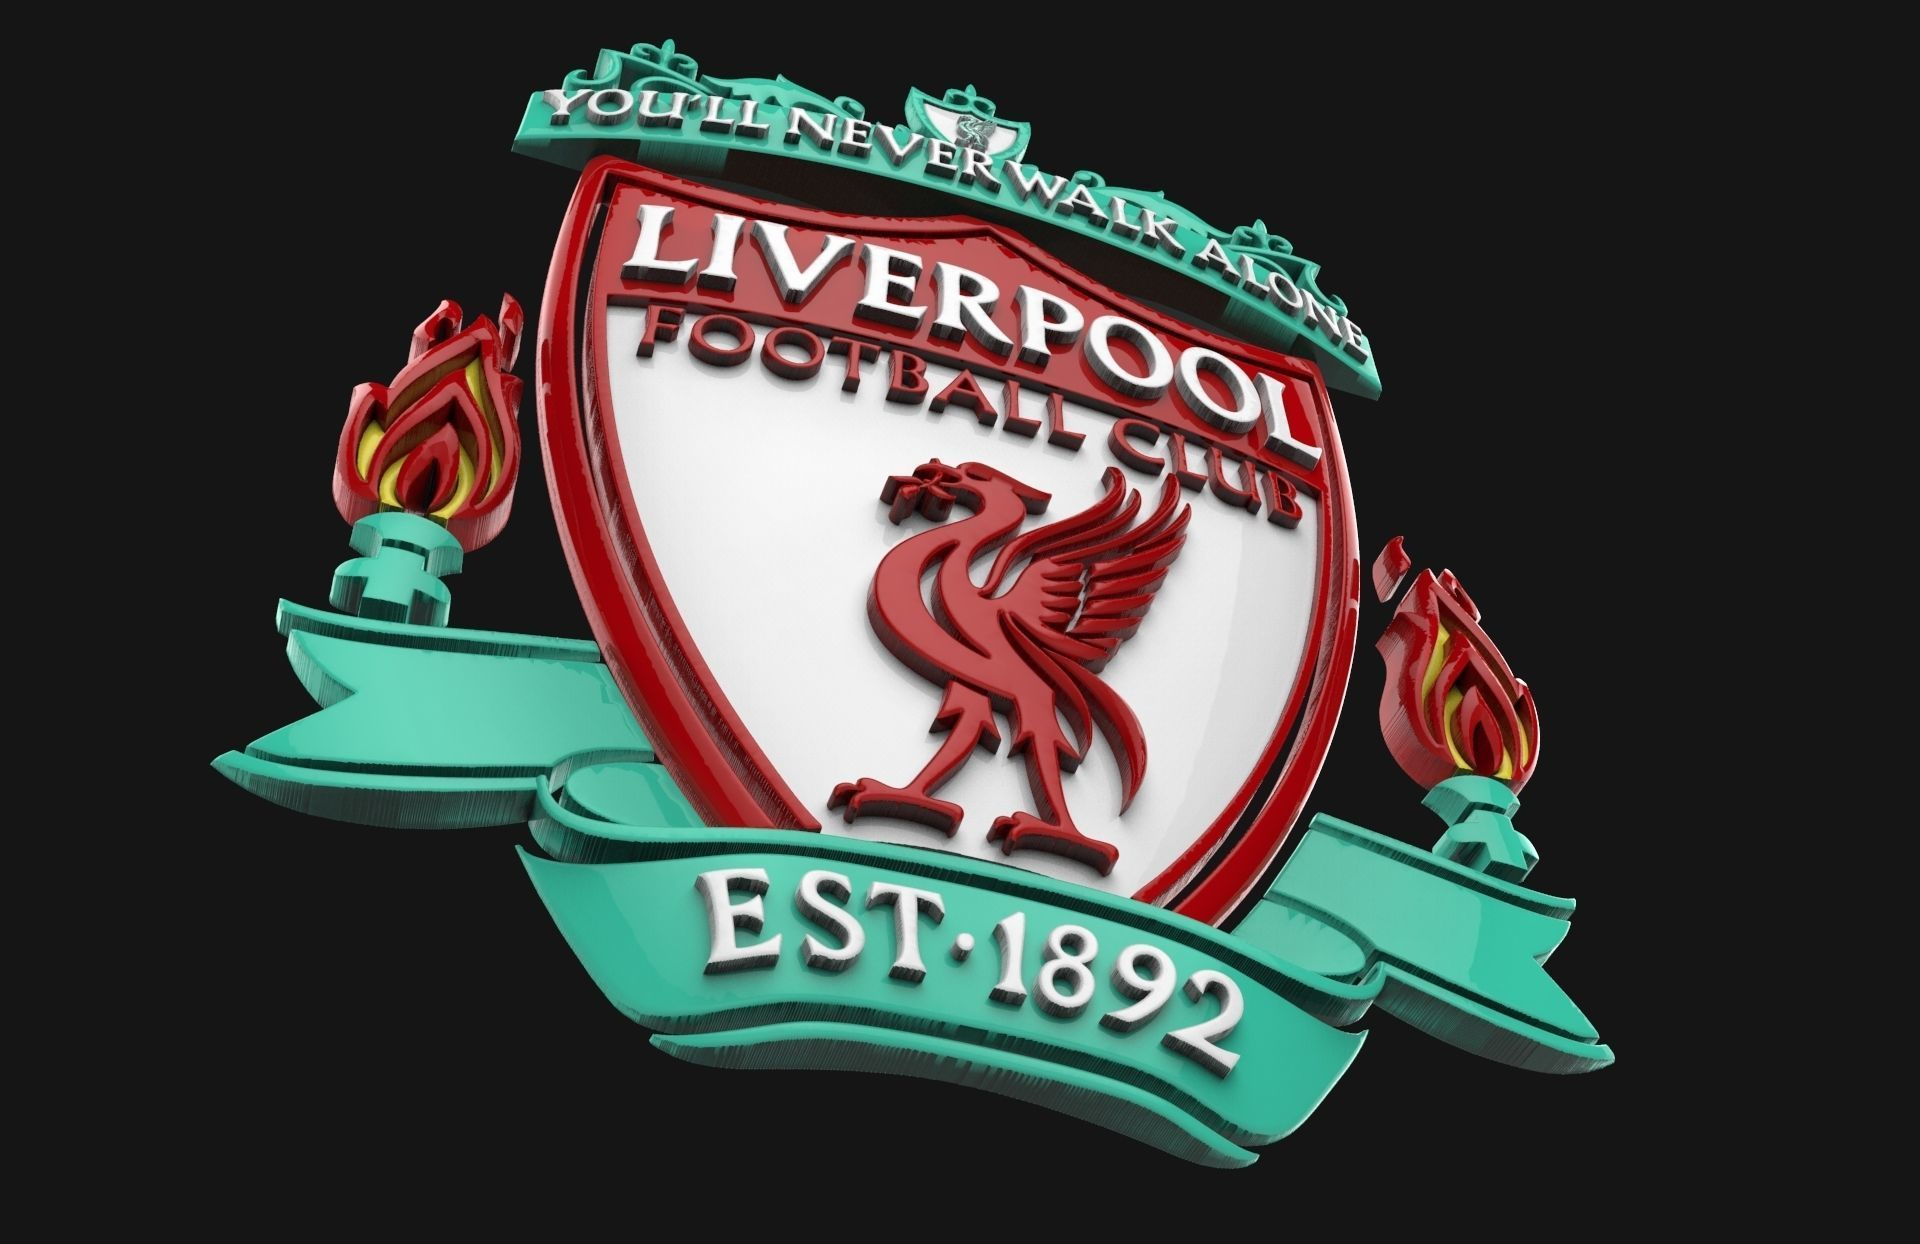 Liverpool Football Club Branding Interior Design And